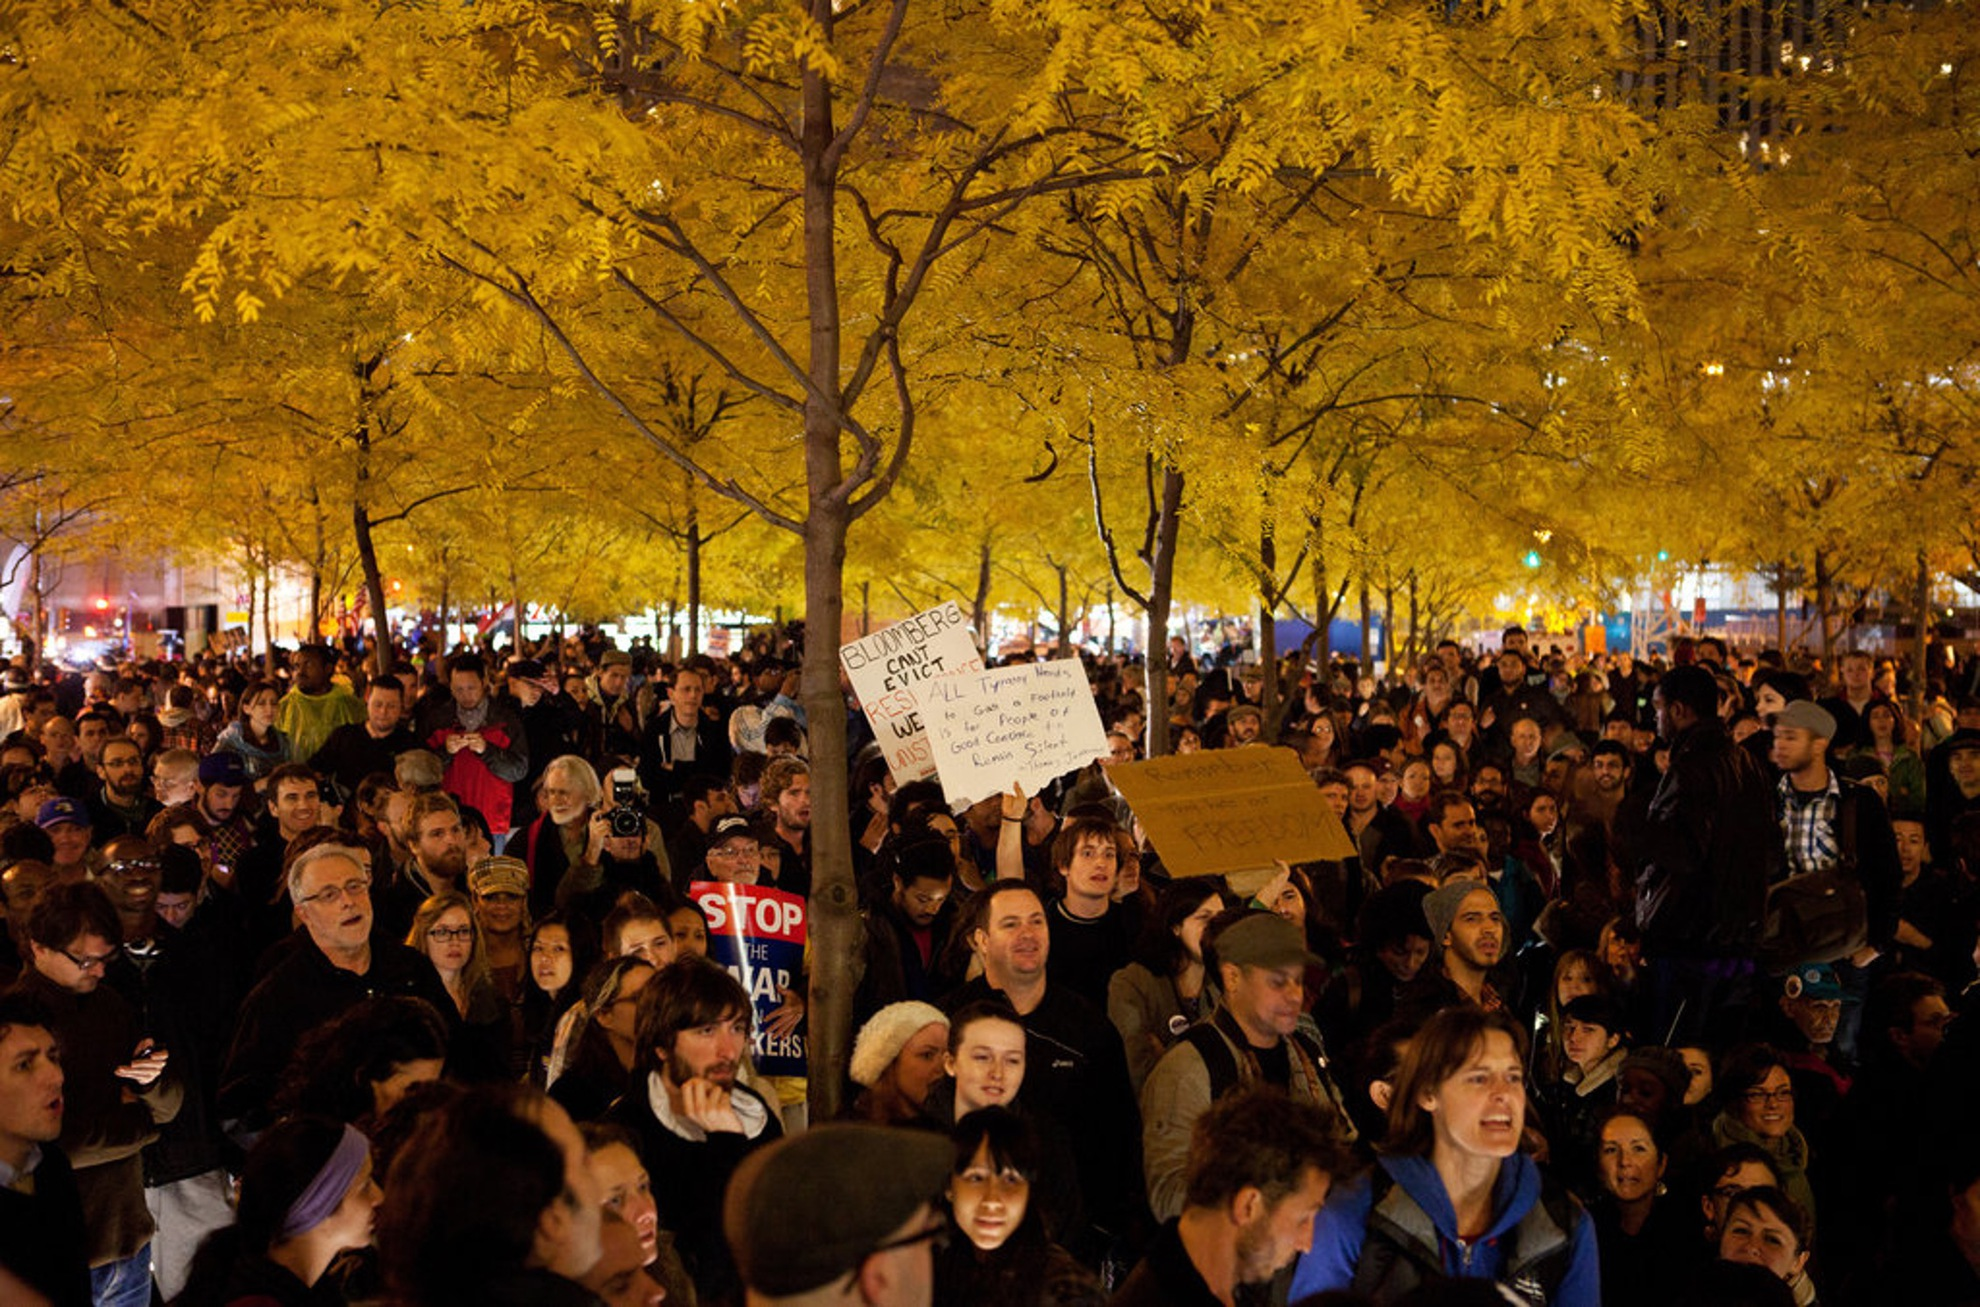 Protesters assembled under the canopy of honey locust trees in Zuccotti Park